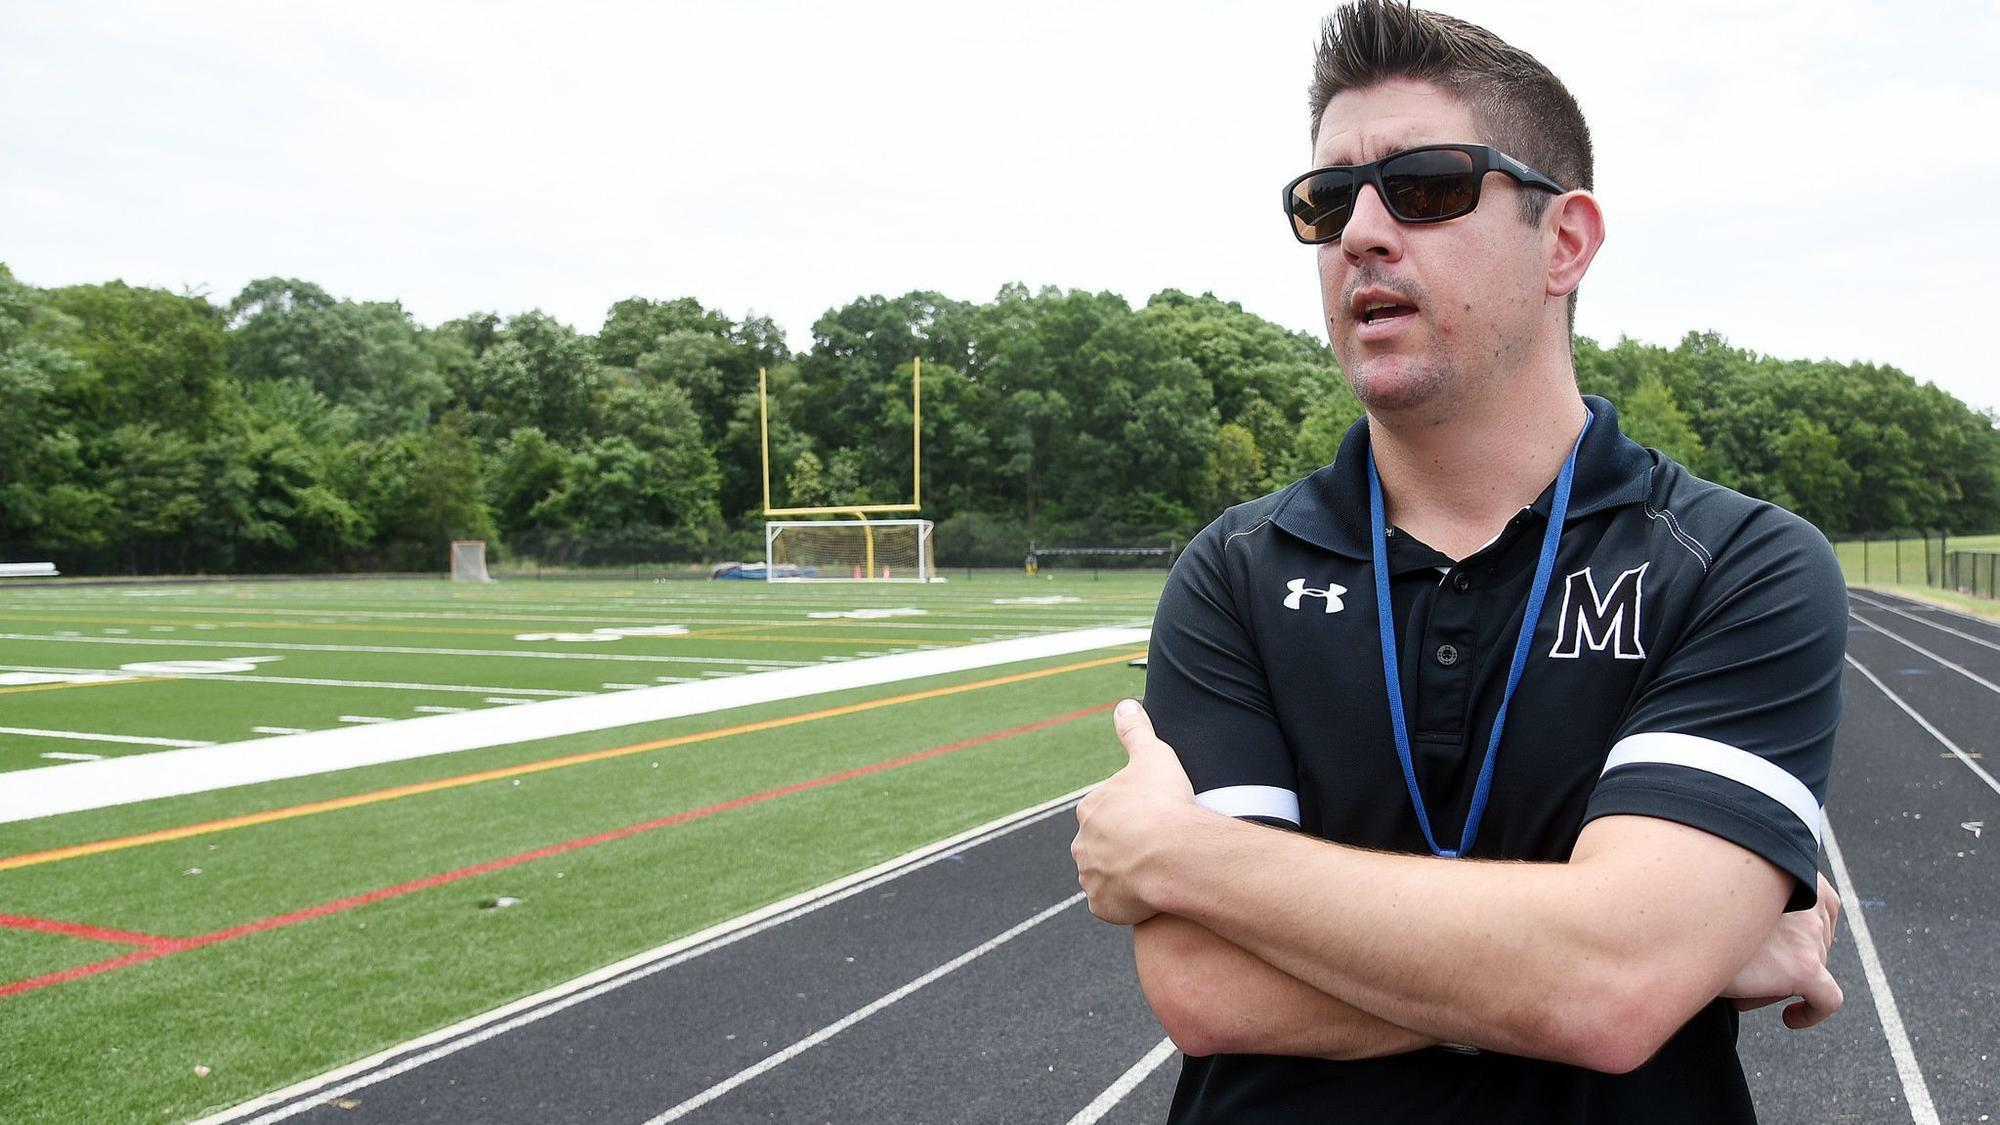 Five years later, Rutledge replaces Lanham again, now as Severna Park AD